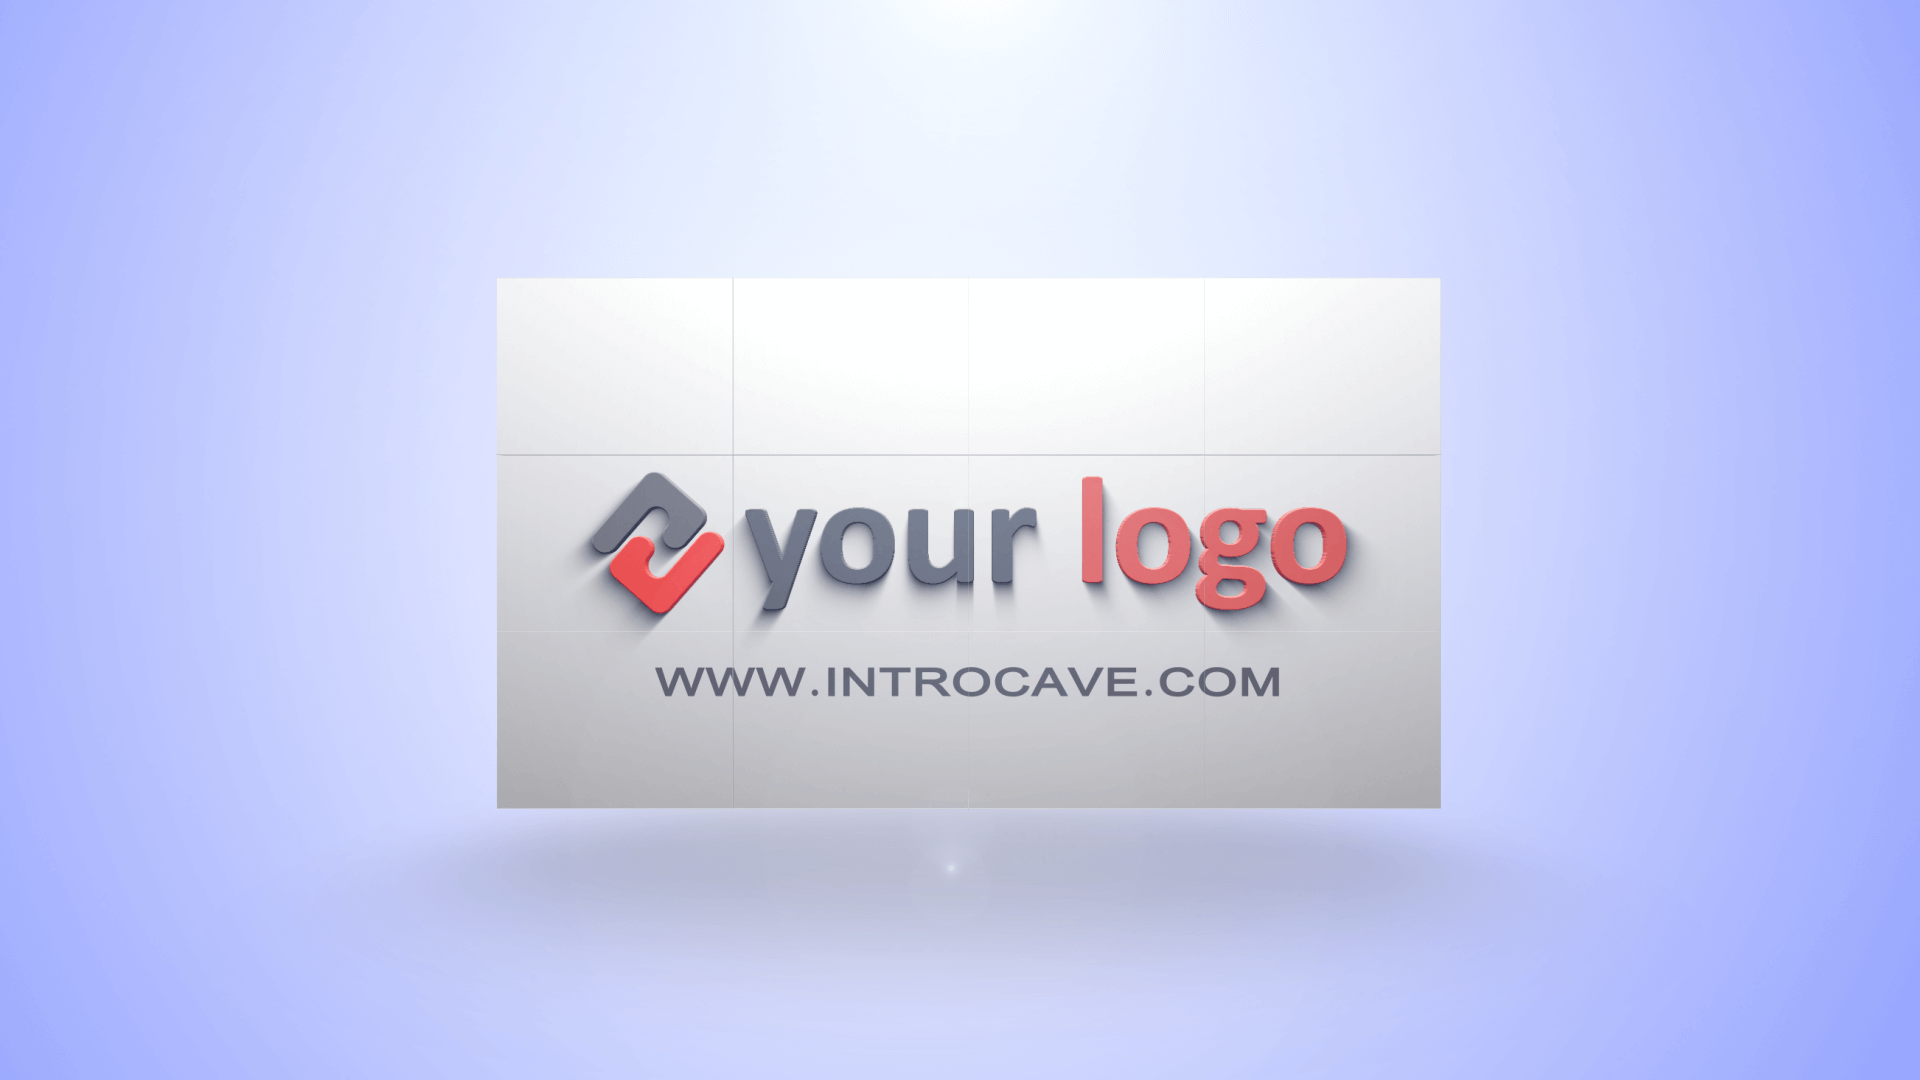 Customize the text for Simple Boxes - Logo to view your free intro movie.